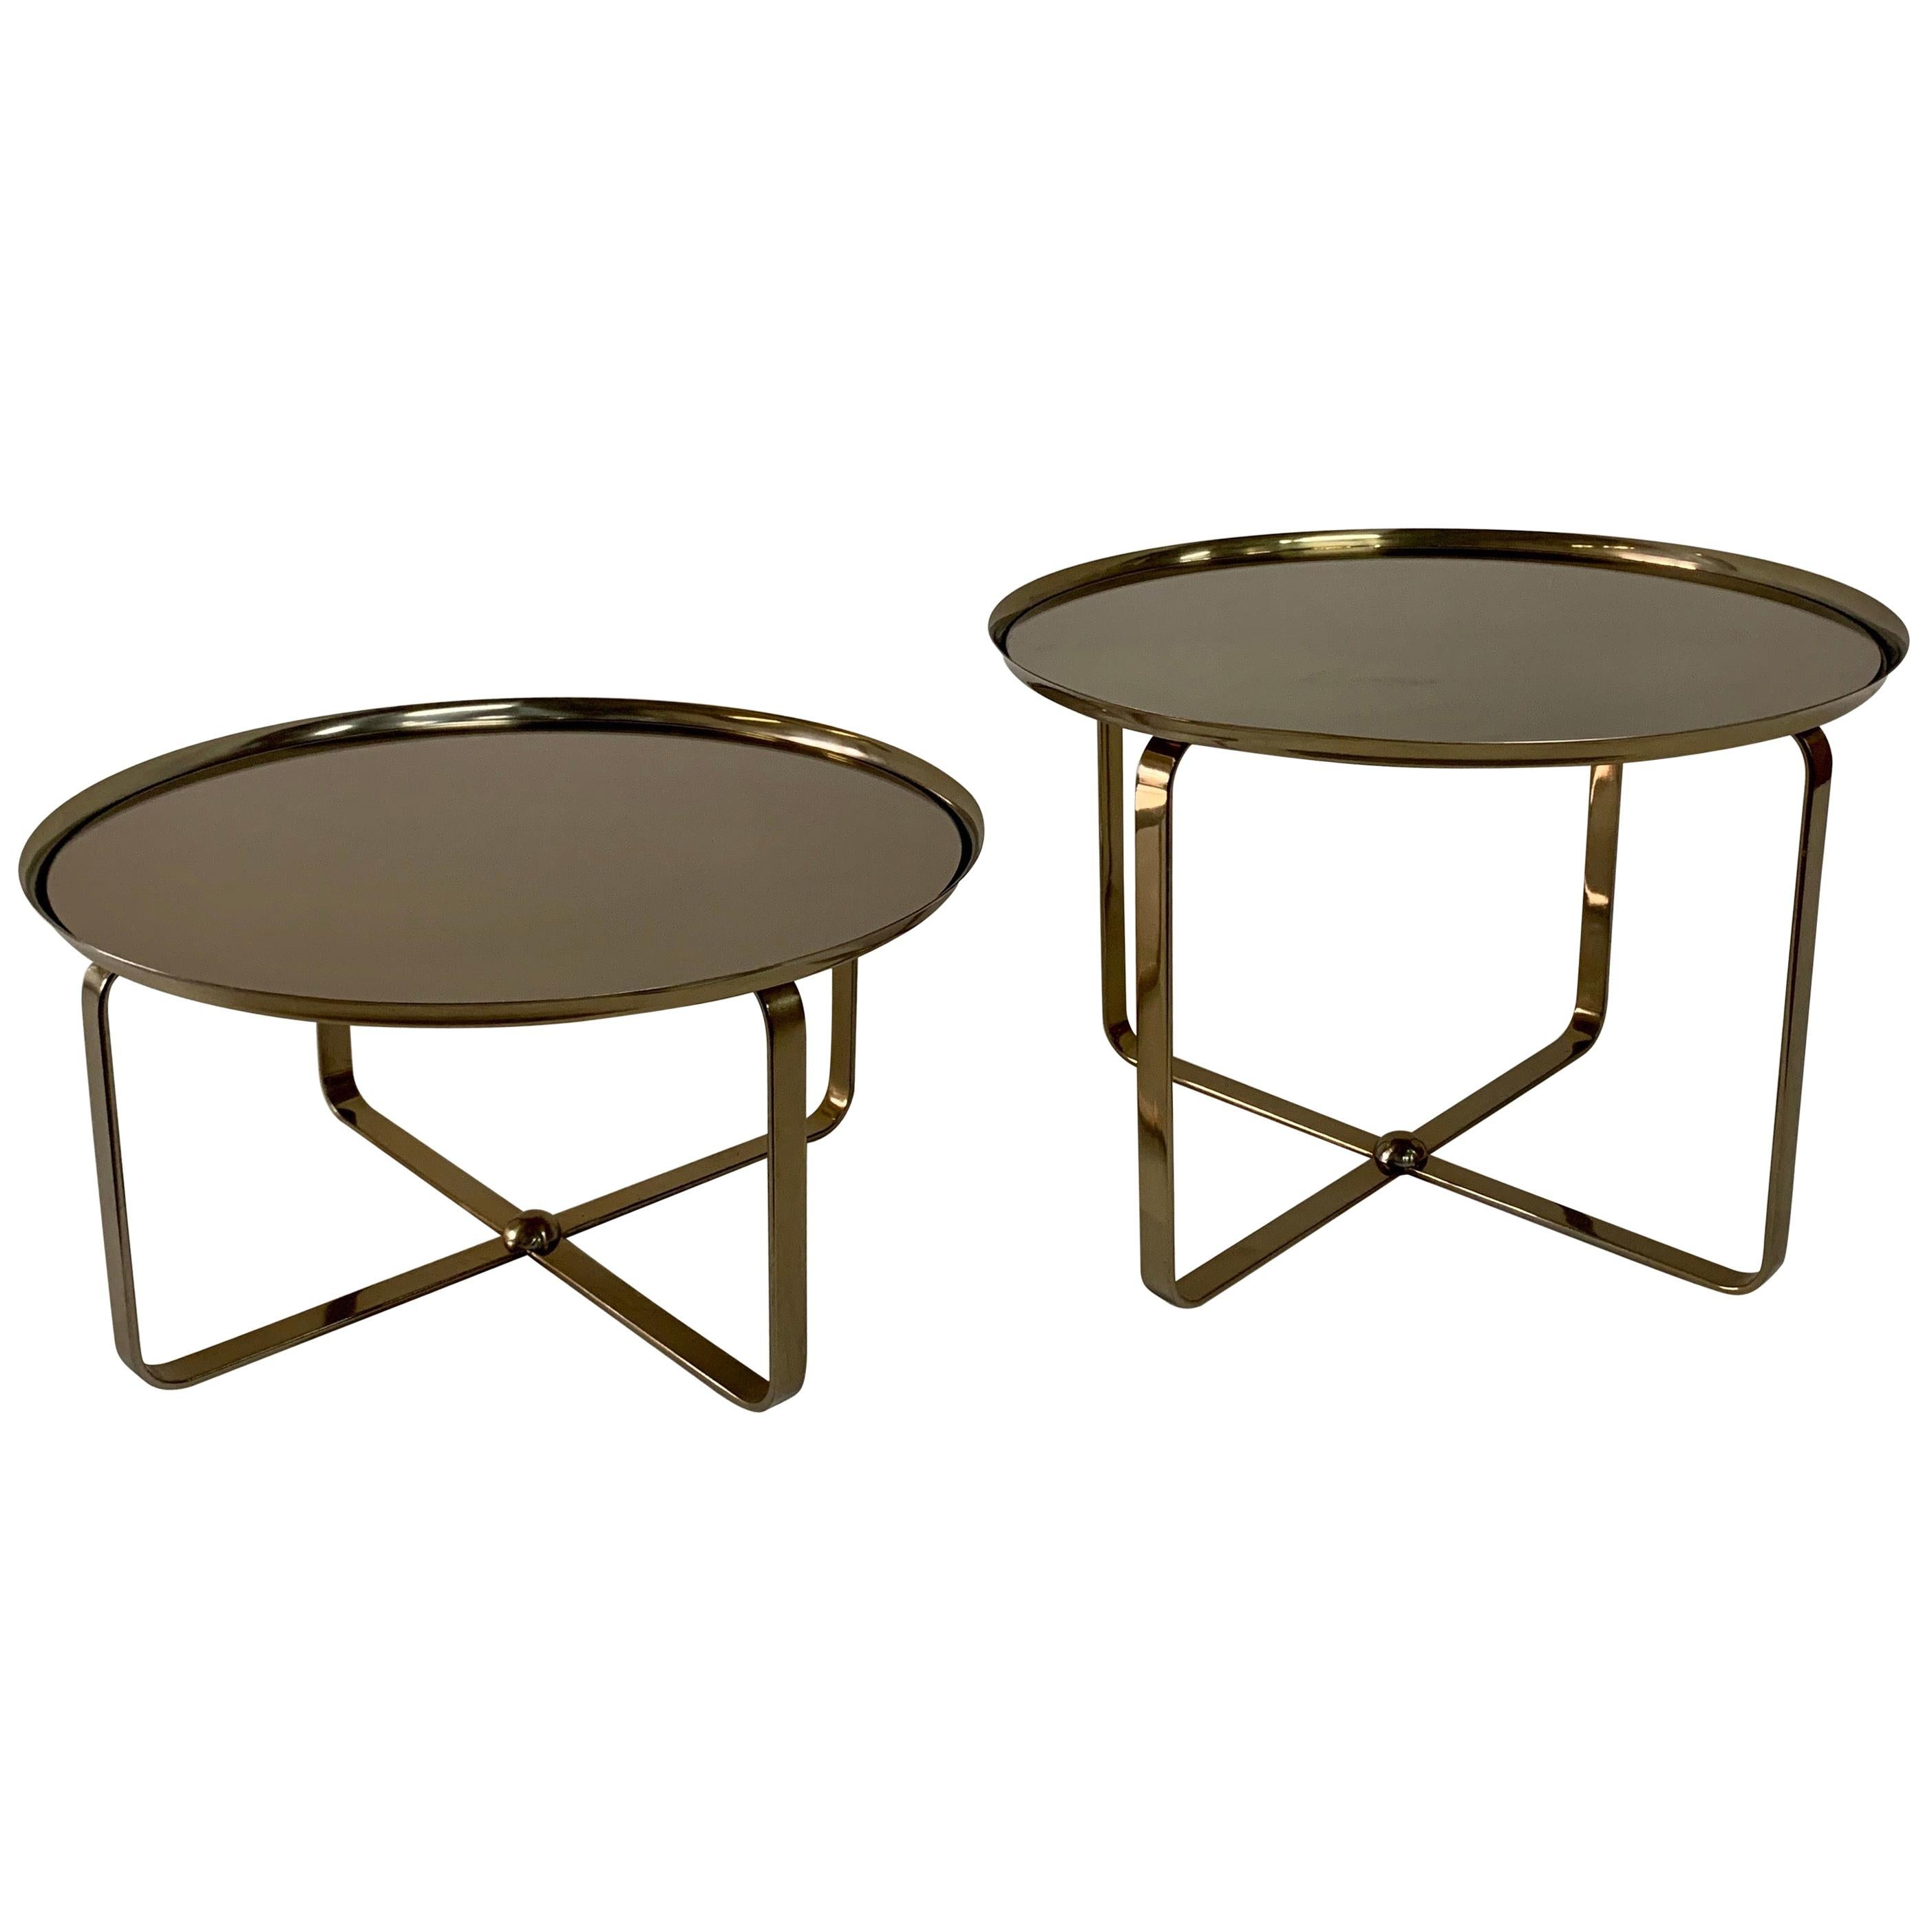 Matte Brass Finish Low Tiered Side Tables, Pair